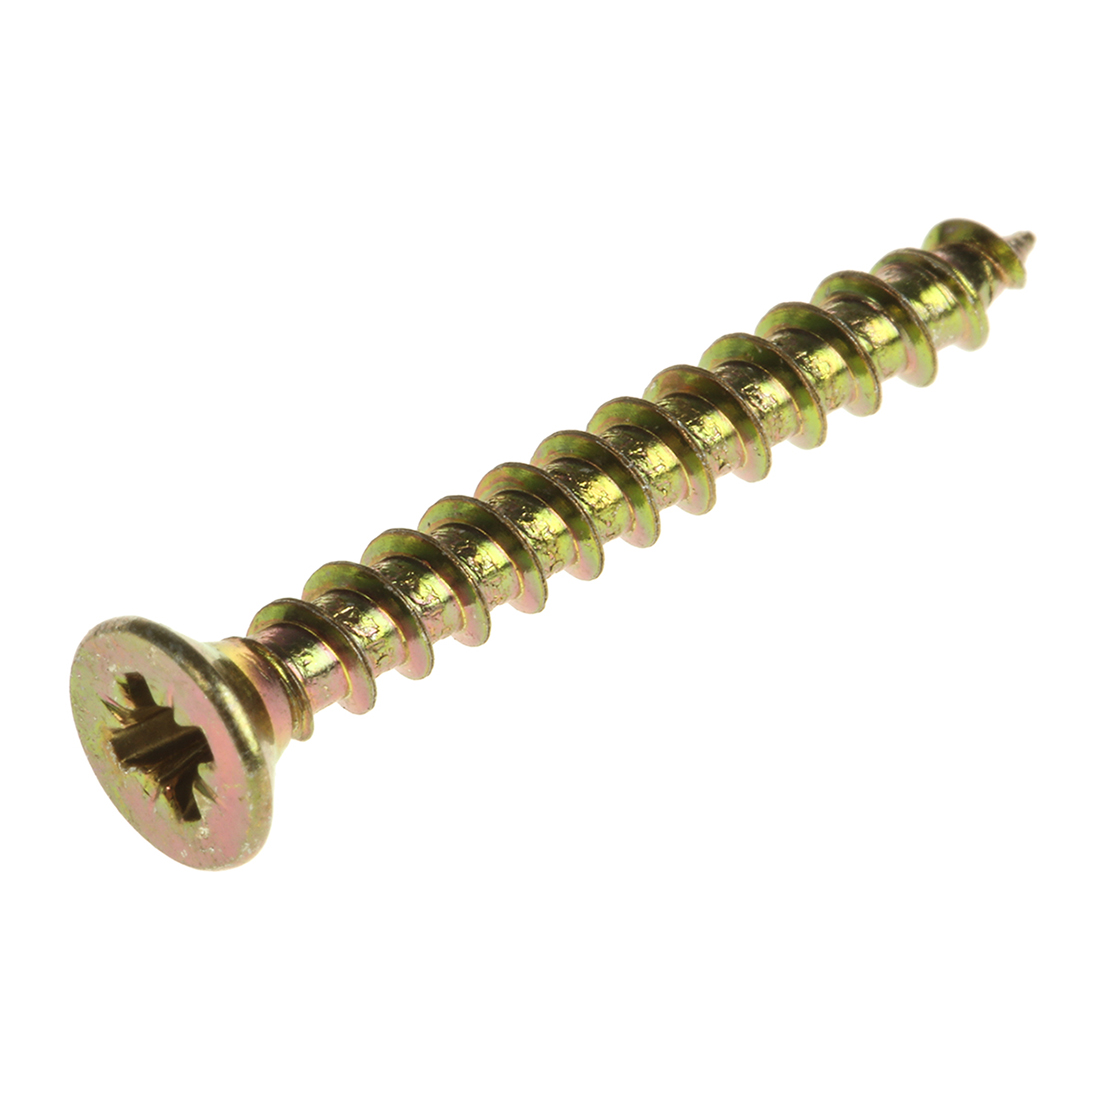 Pozidriv Countersunk Steel Wood Screw Yellow Passivated, Zinc Plated, 3mm Thread, 25mm Length - 100 Pack